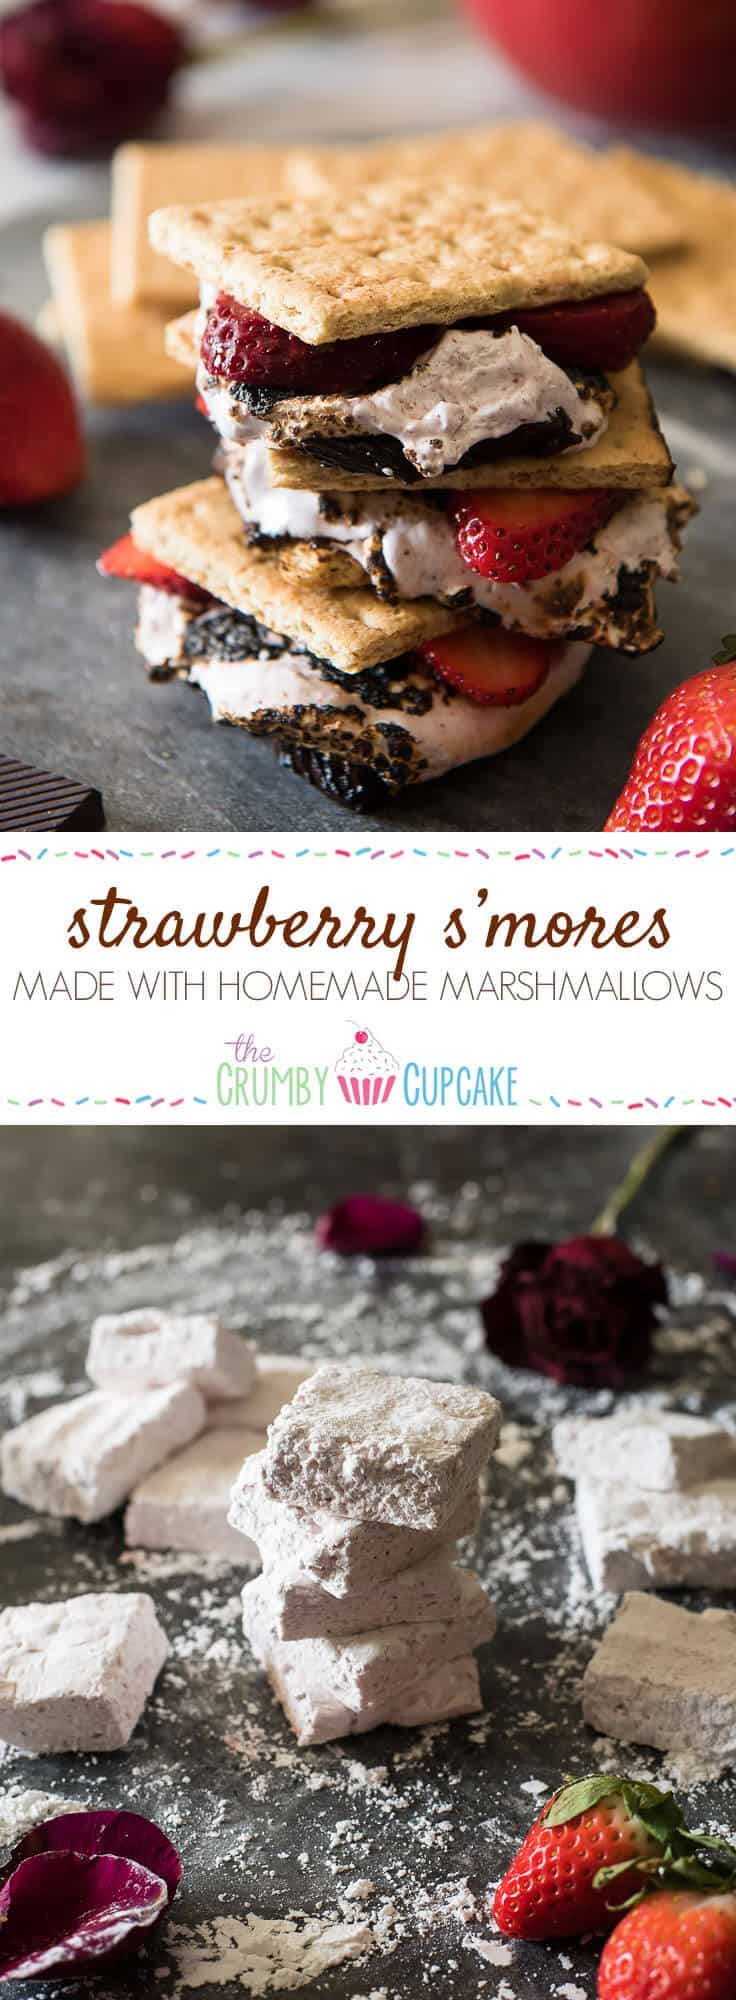 Strawberry S'mores - because winter s'mores are totally a thing! Take these classic treats up a notch by replacing the store-bought standard with homemade strawberry marshmallows, made from dehydrated Florida strawberries! @Flastrawberries #SundaySupper #FLStrawberry